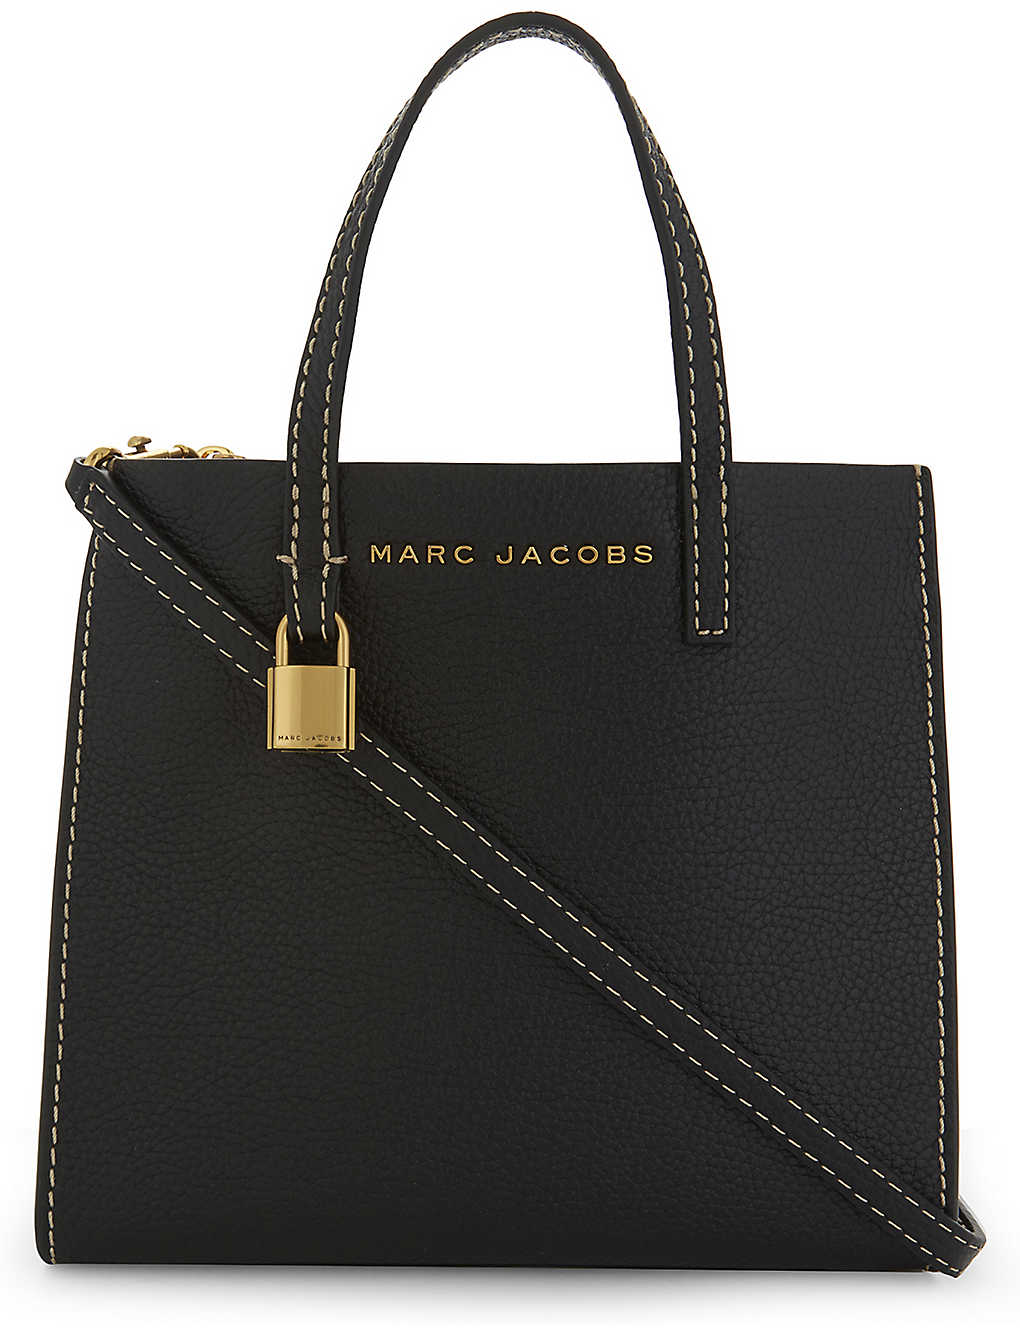 a66a3d156c67 MARC JACOBS - Mini Grind tote bag